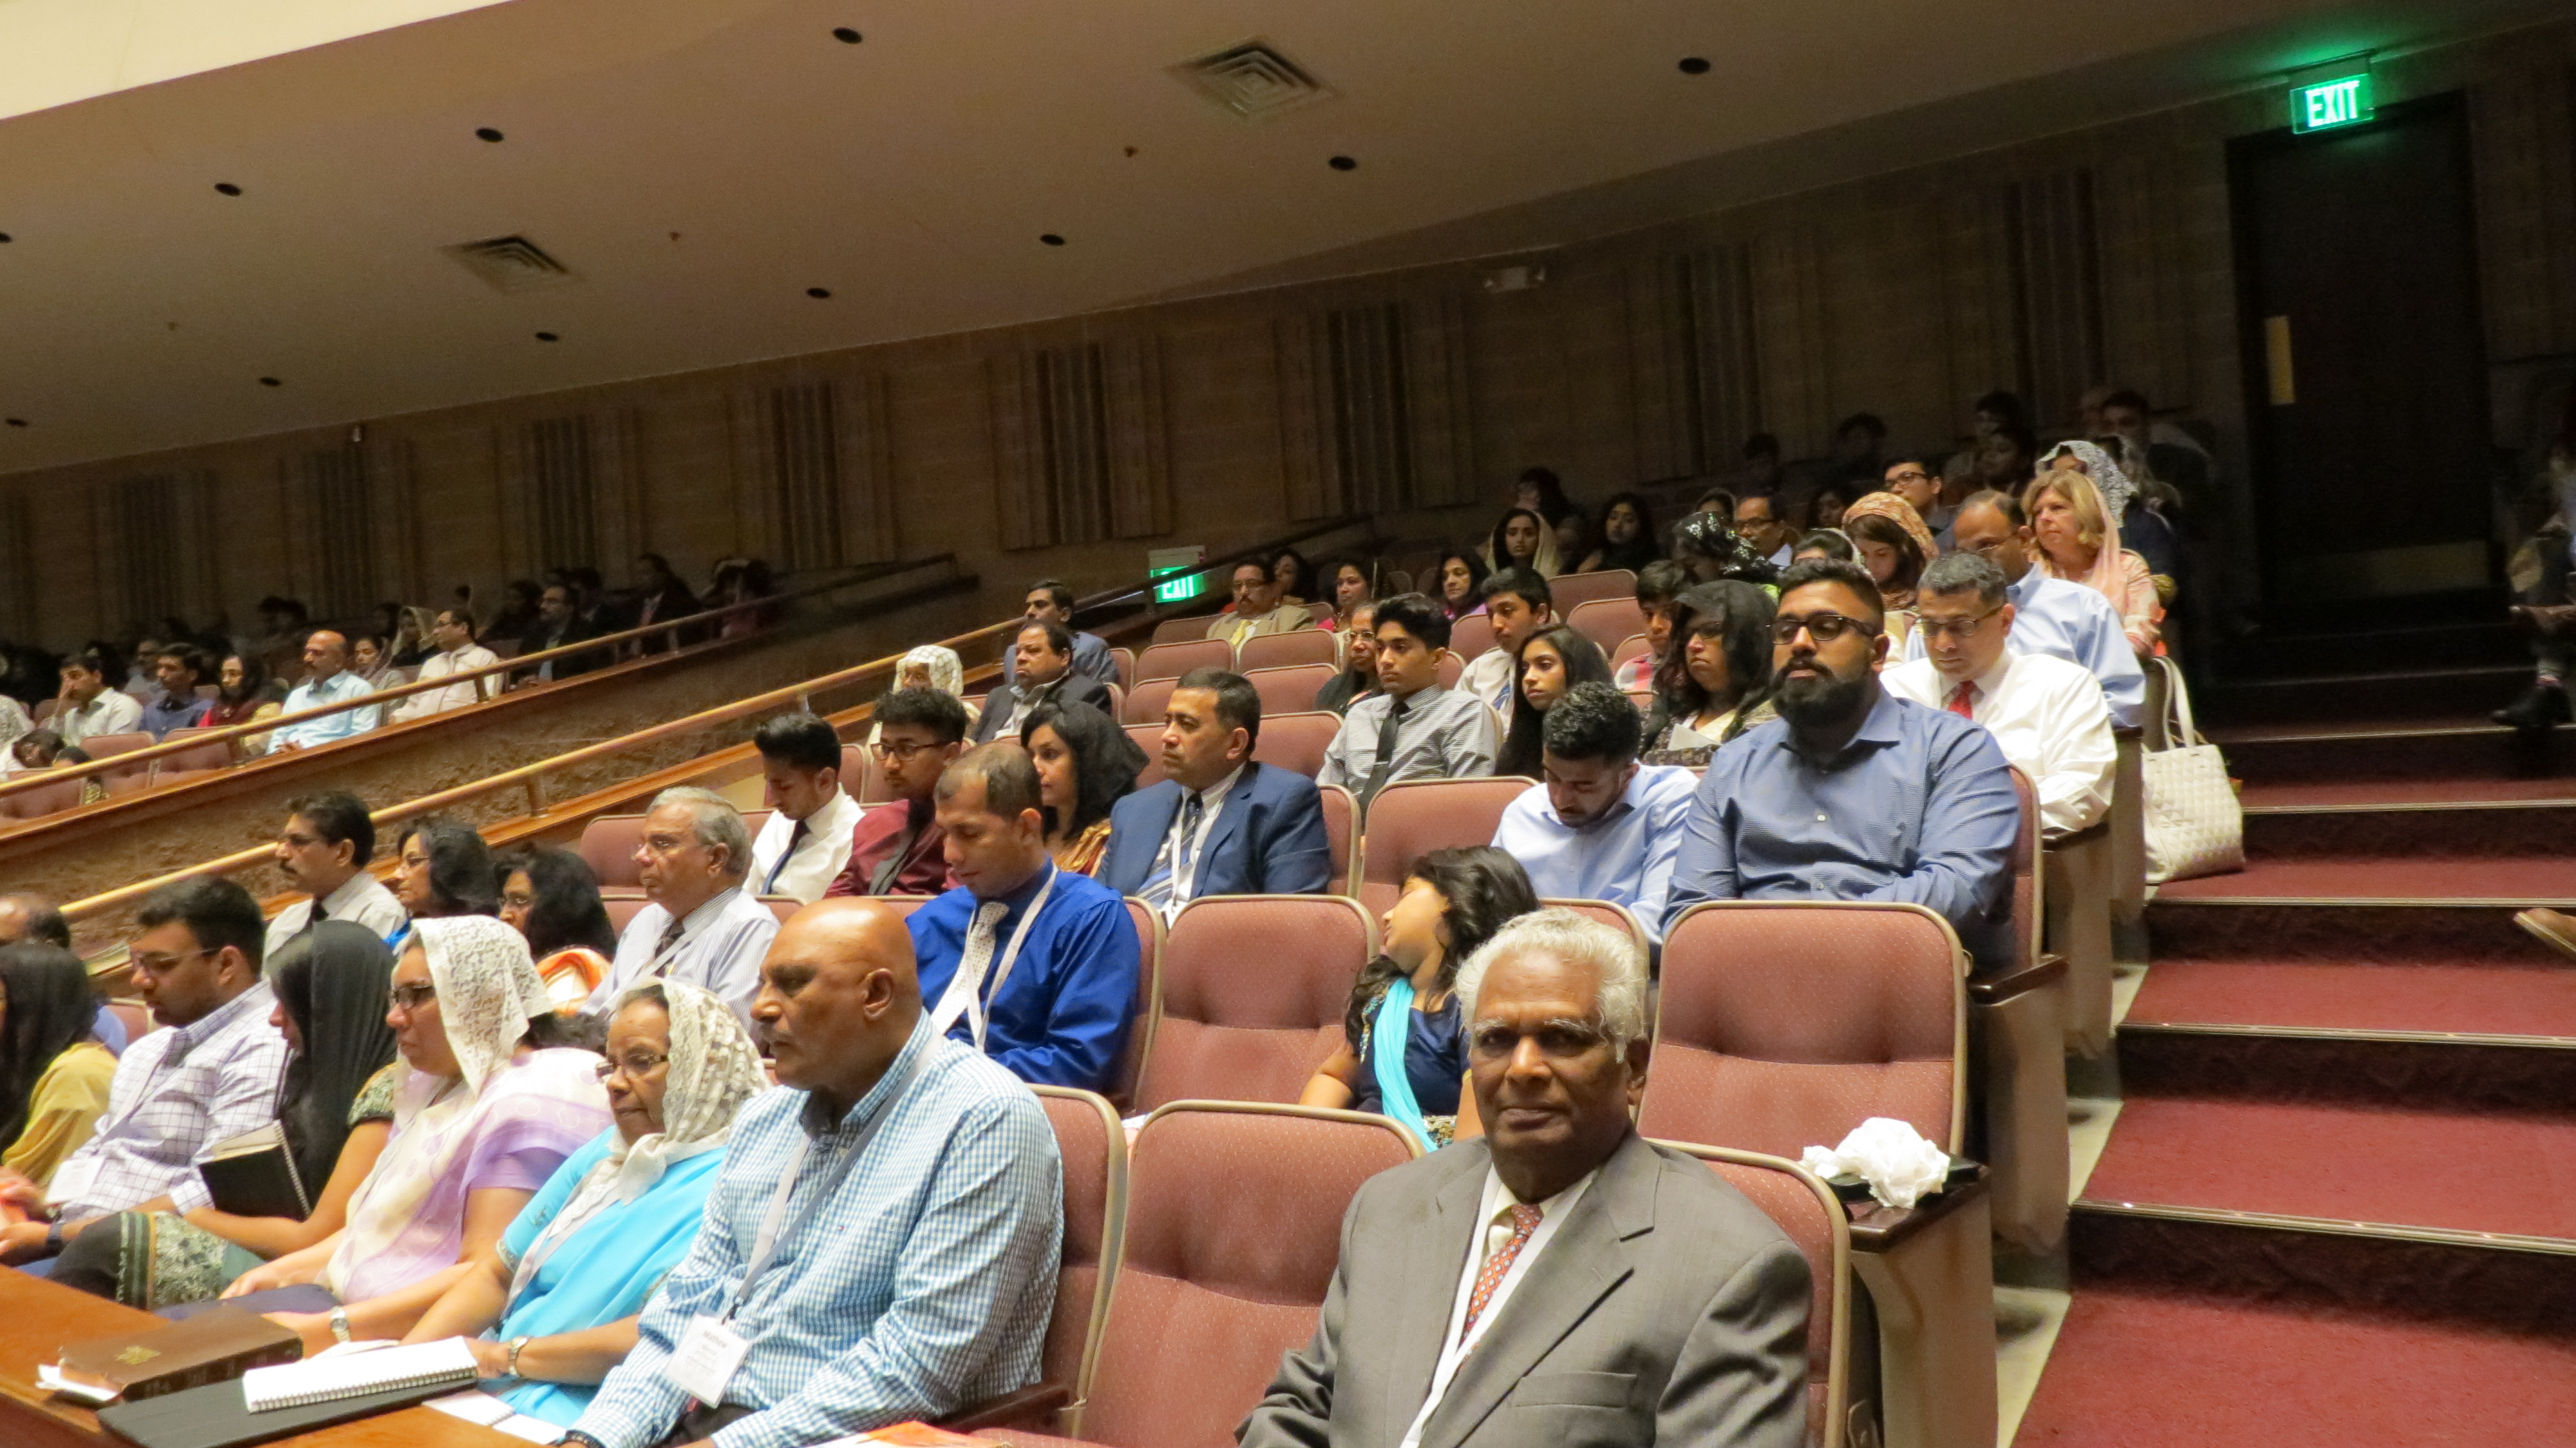 5th Day PLENARY AUDIENCE 3